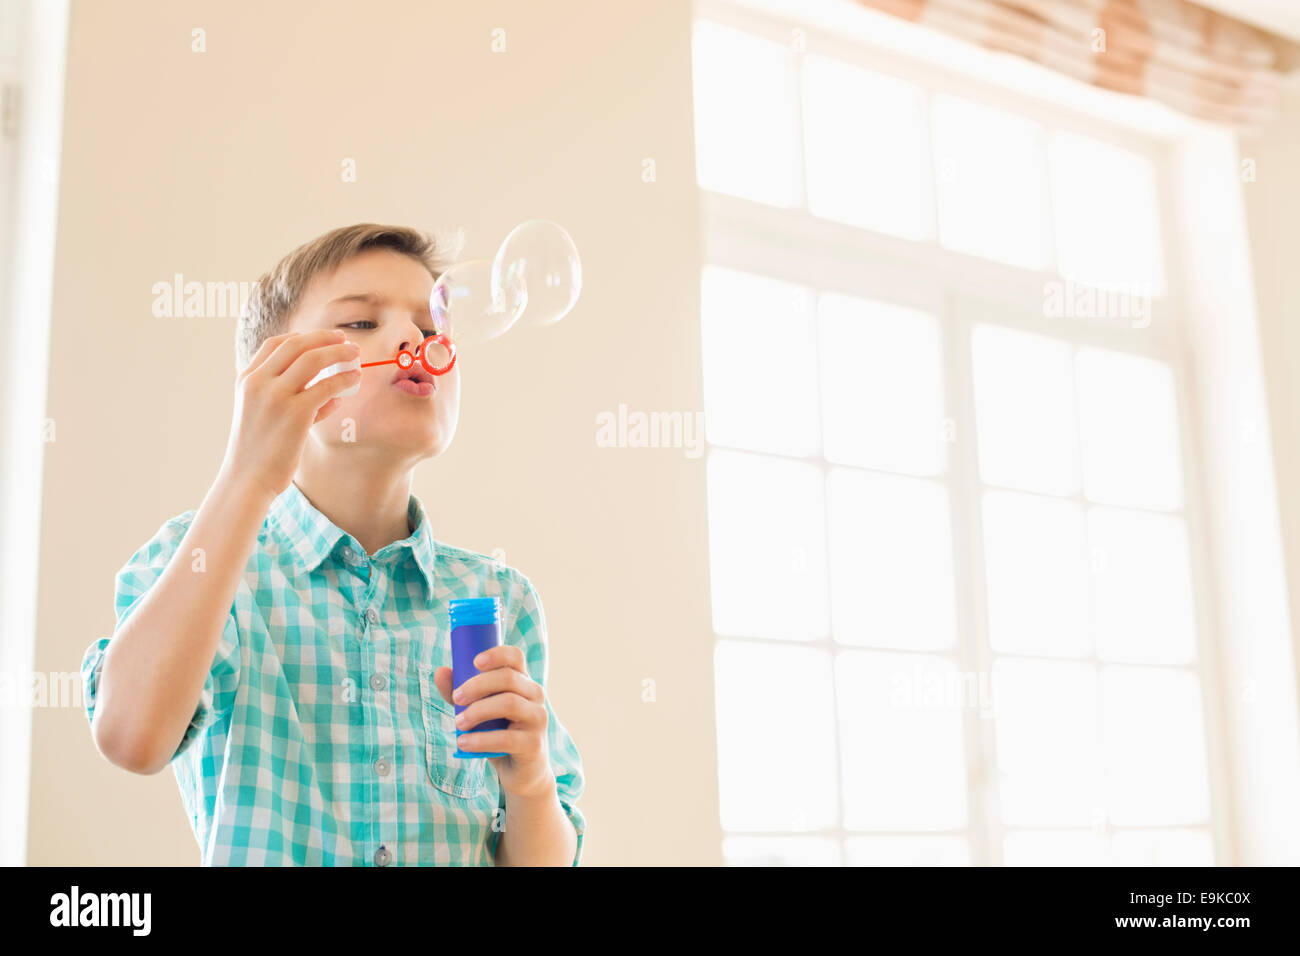 Boy blowing Bubbles at Home Photo Stock